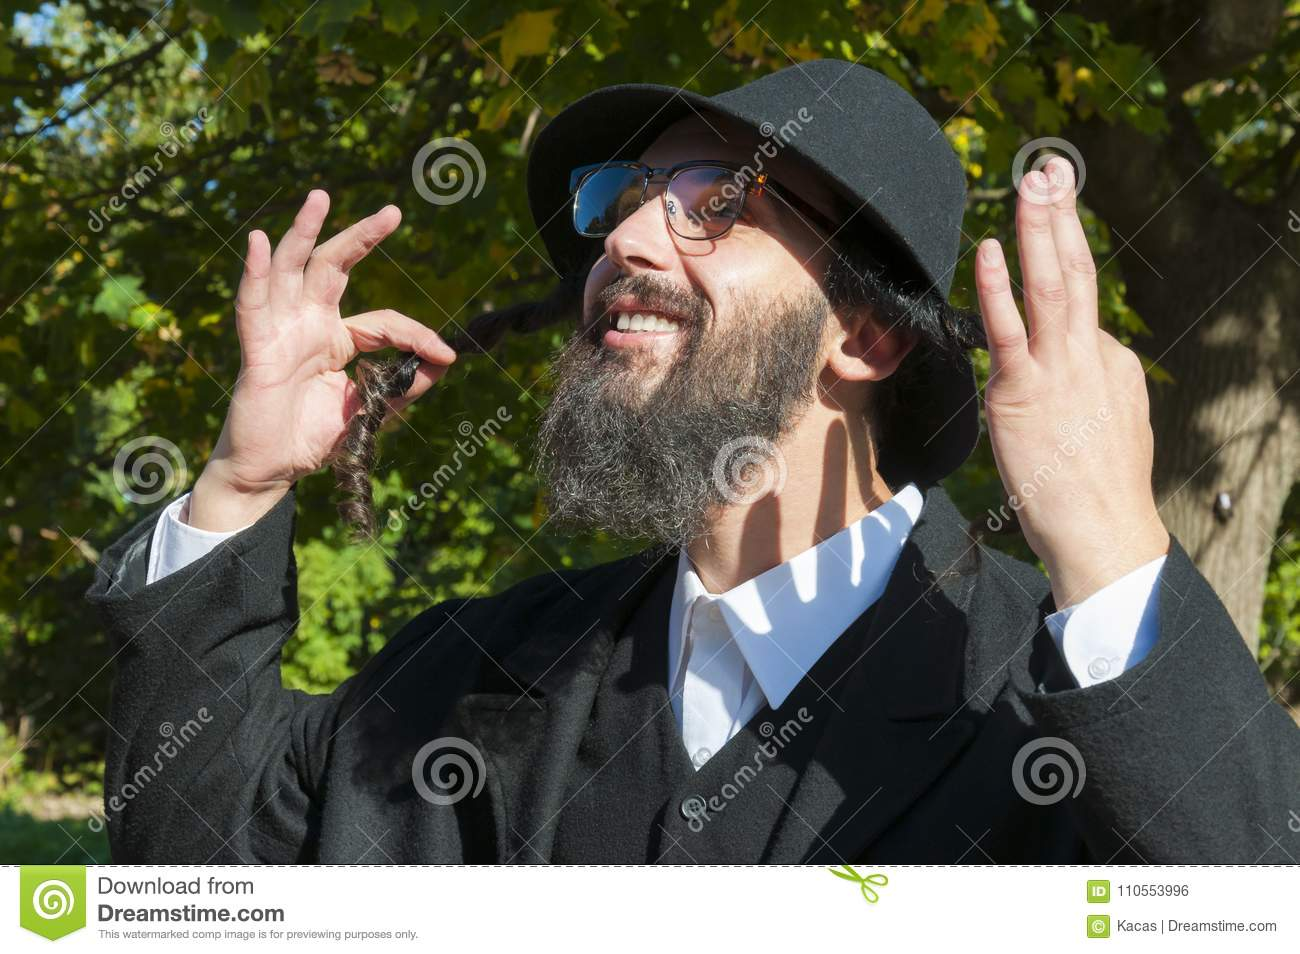 ec6b9cba4a7 Outdoor sunny portrait of a young happy orthodox Jewish man with eyeglasses  and black beard holding payot